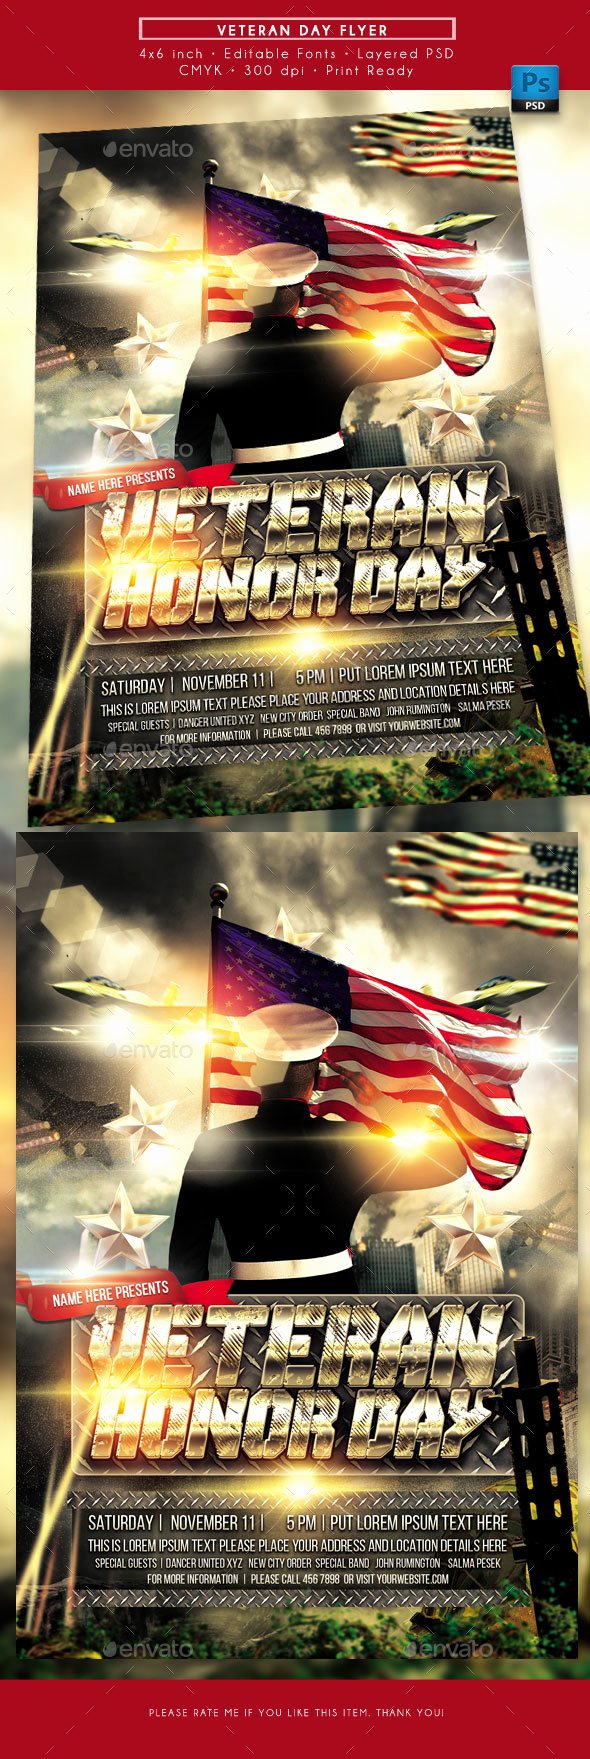 Veterans Day Flyer Templates Free Beautiful Veterans Day Flyer by Rudydesign